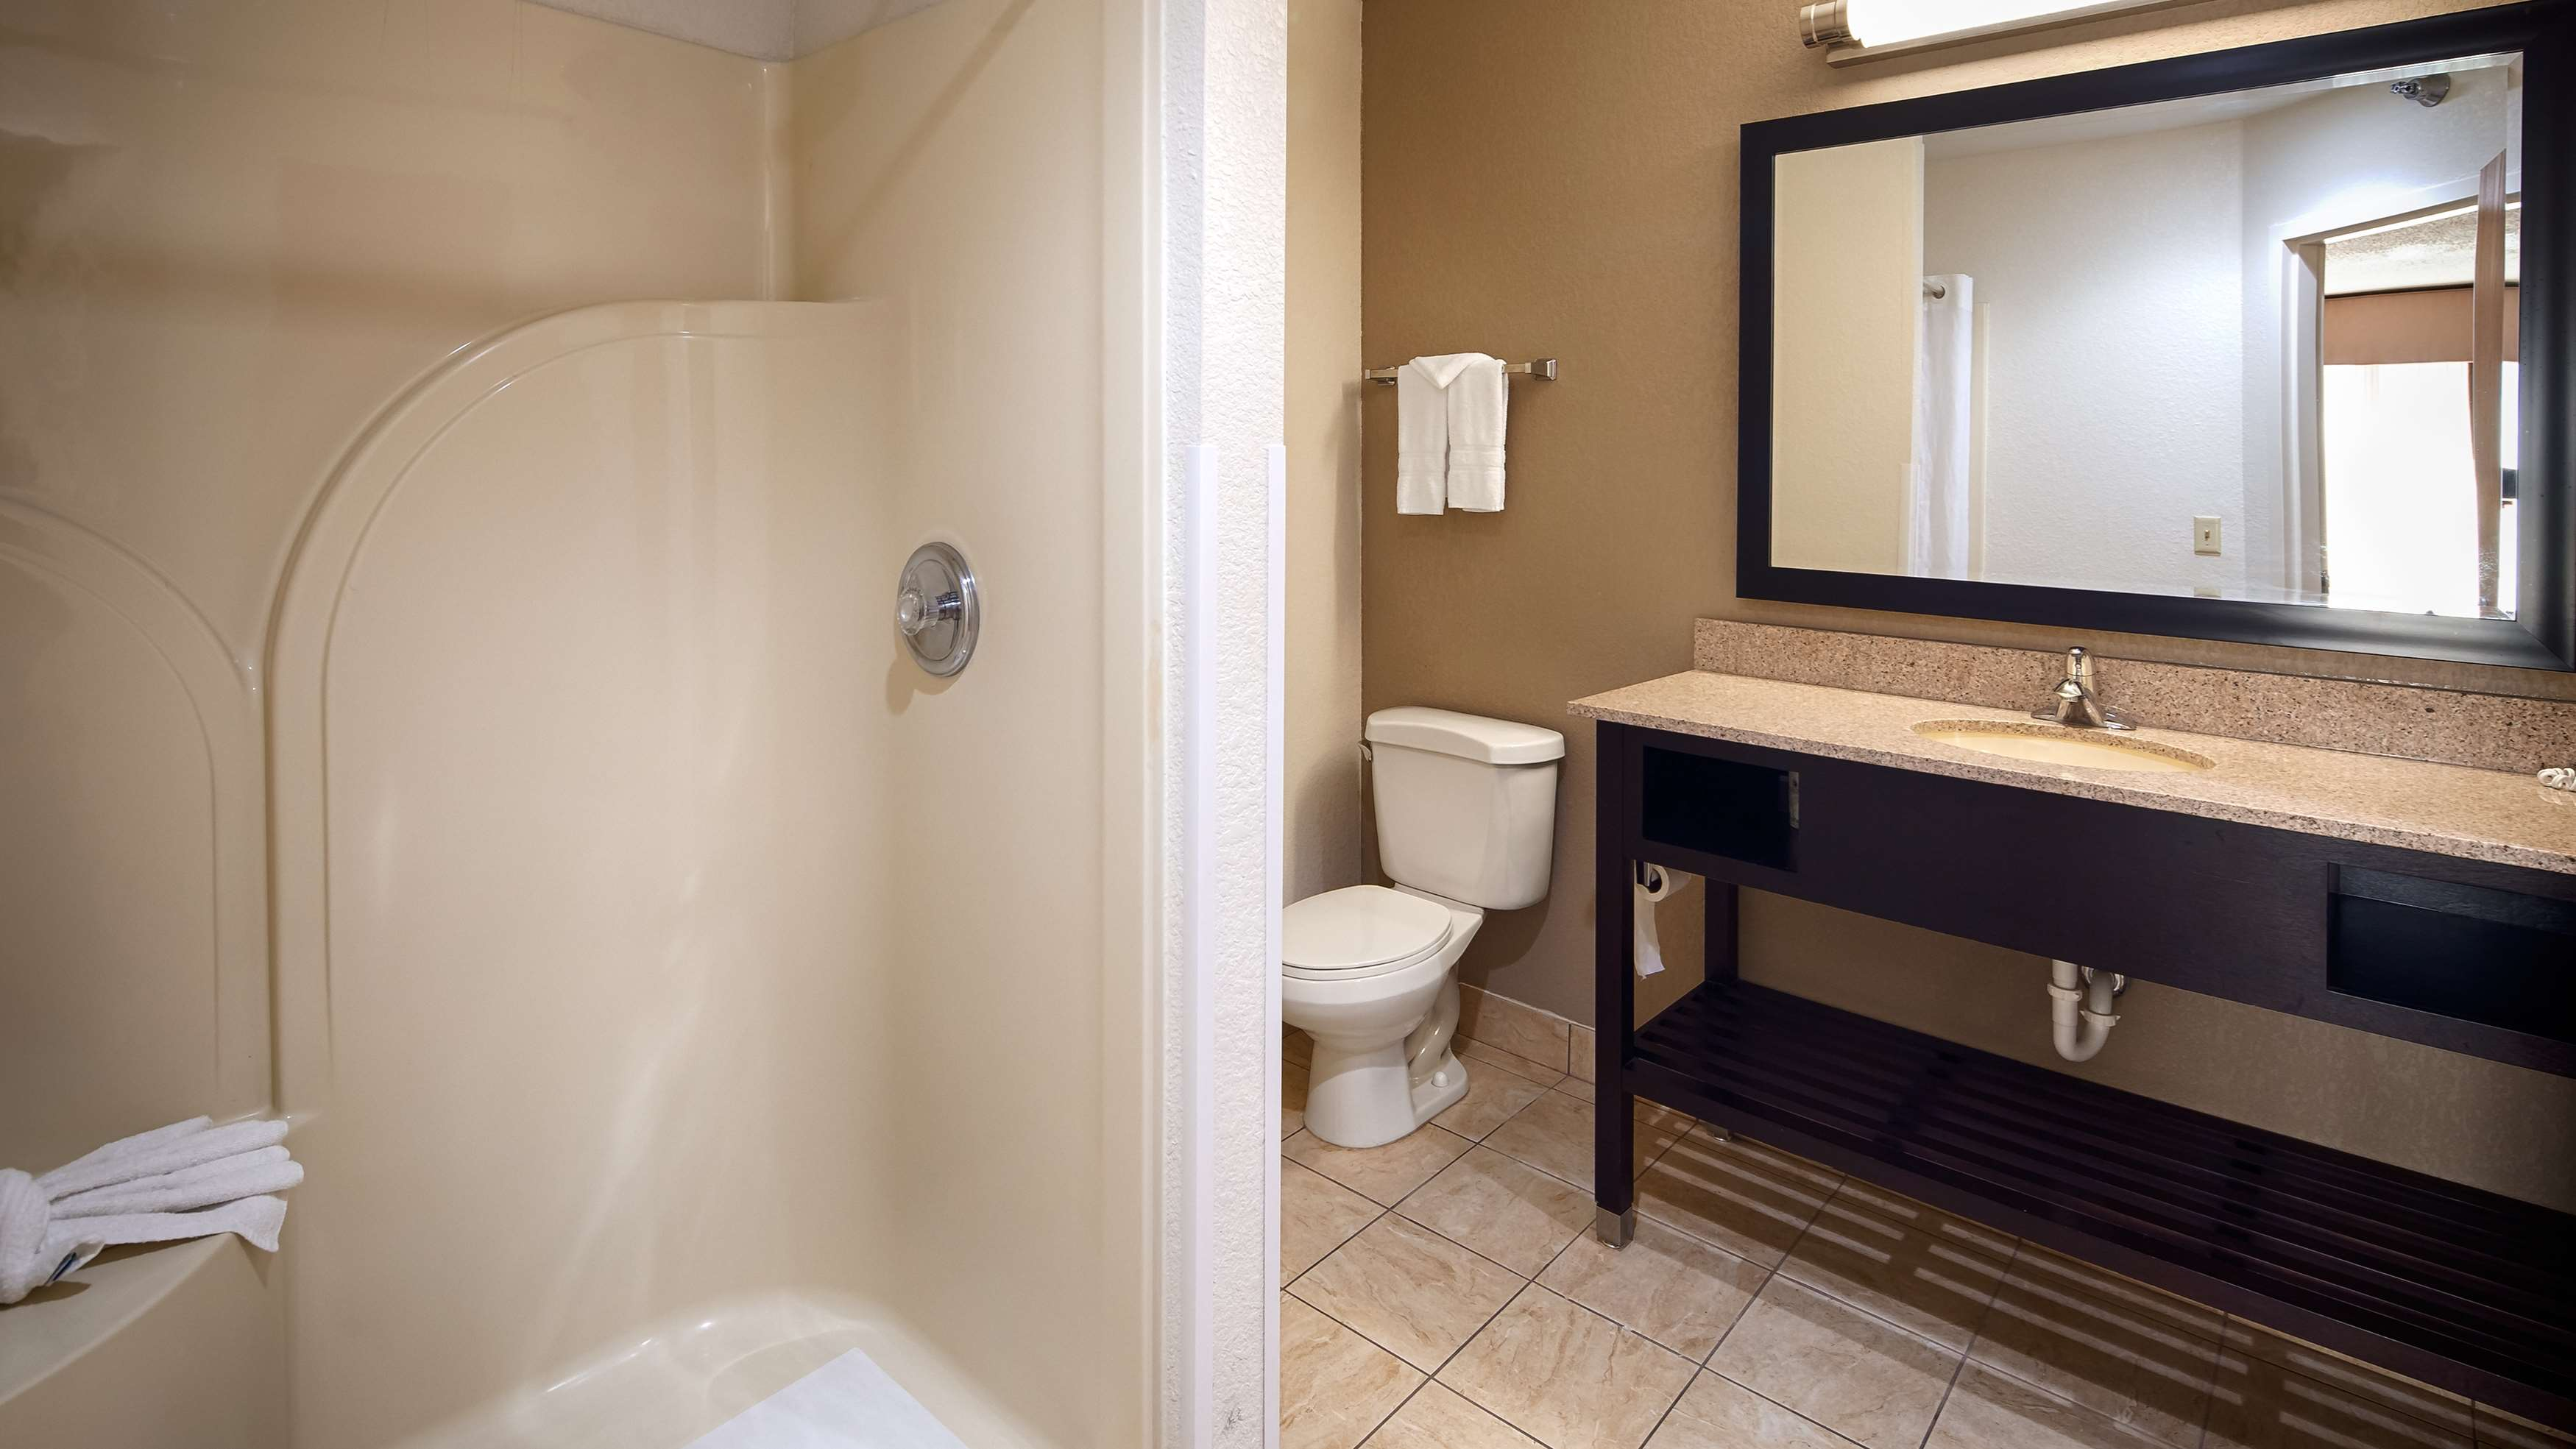 Best Western Suites image 11